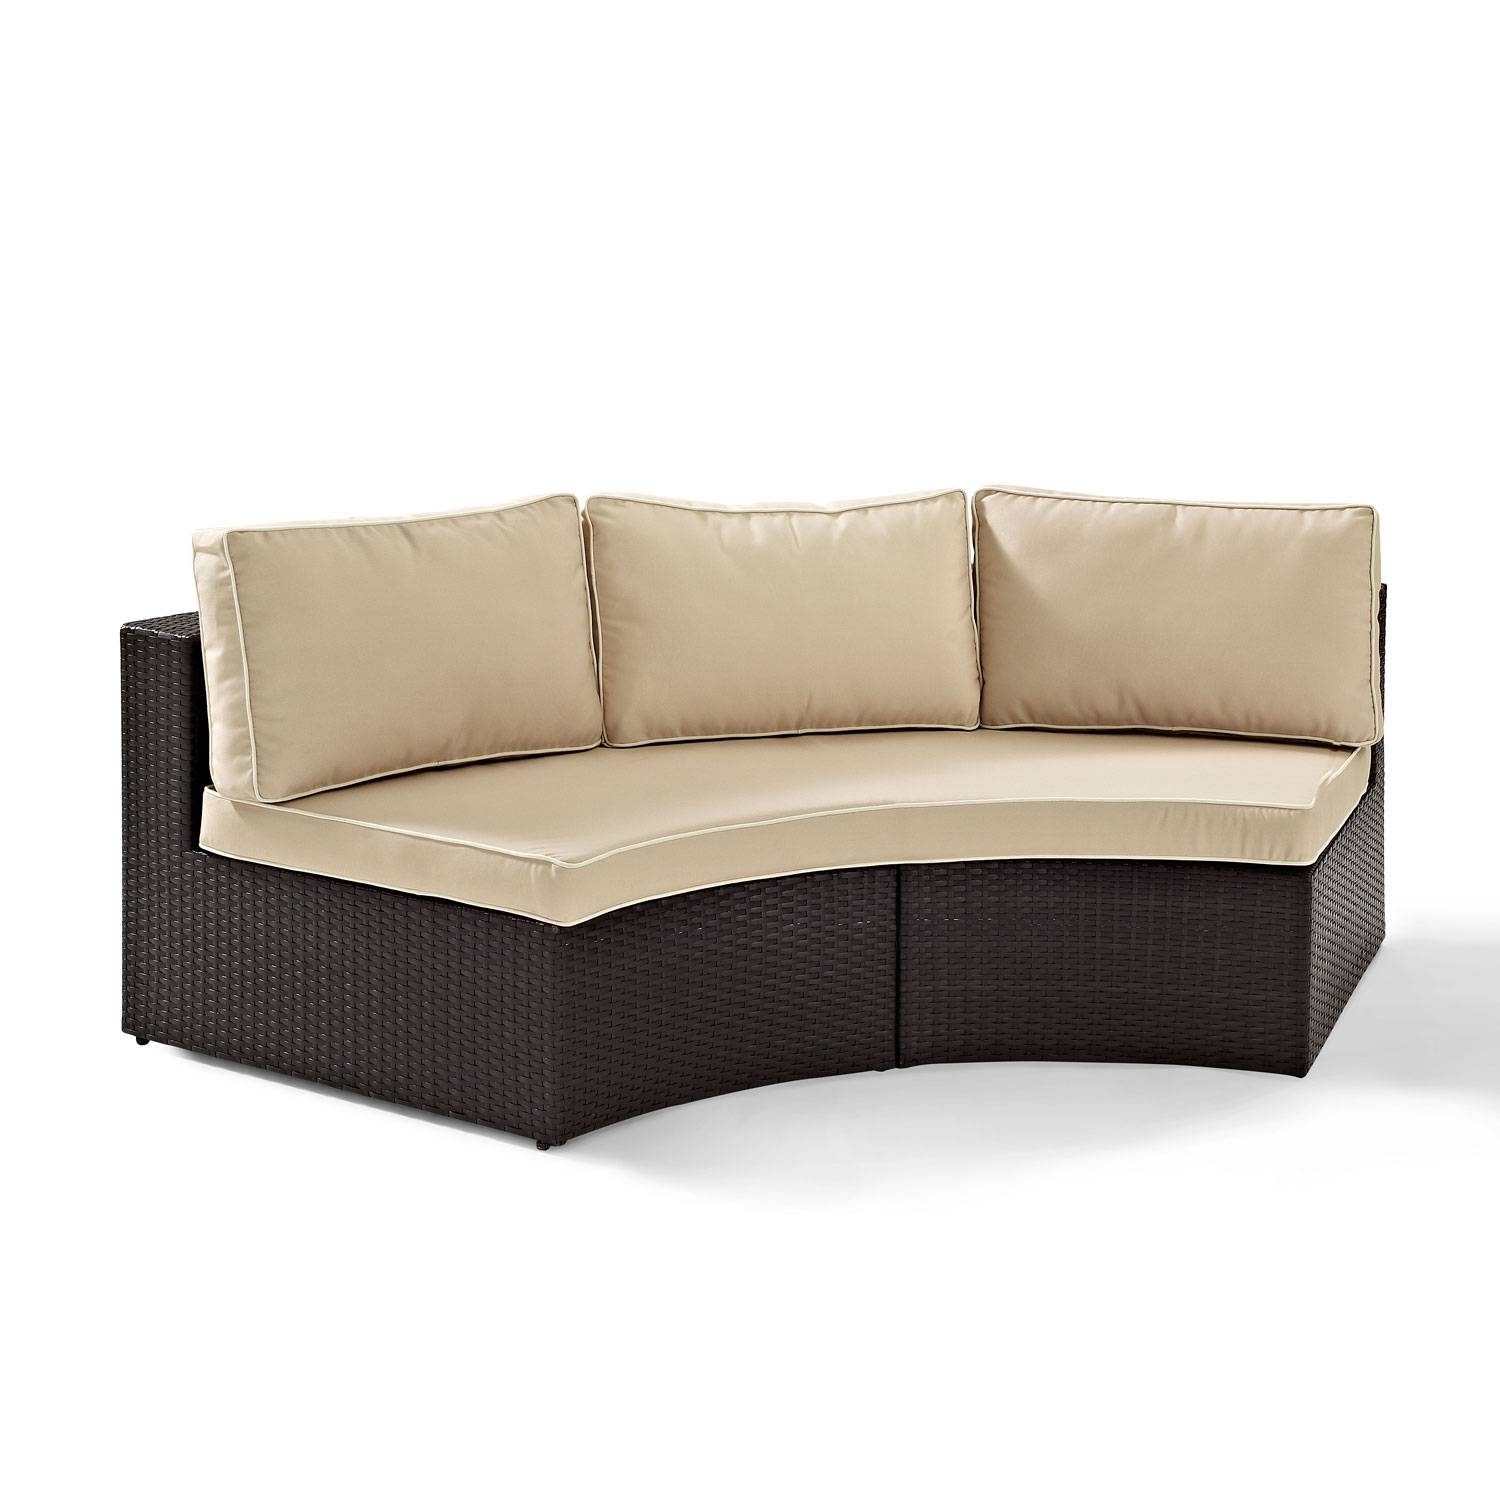 Catalina Outdoor Wicker Round Sectional Sofa With Sand Cushions for Round Sectional Sofa Bed (Image 4 of 25)